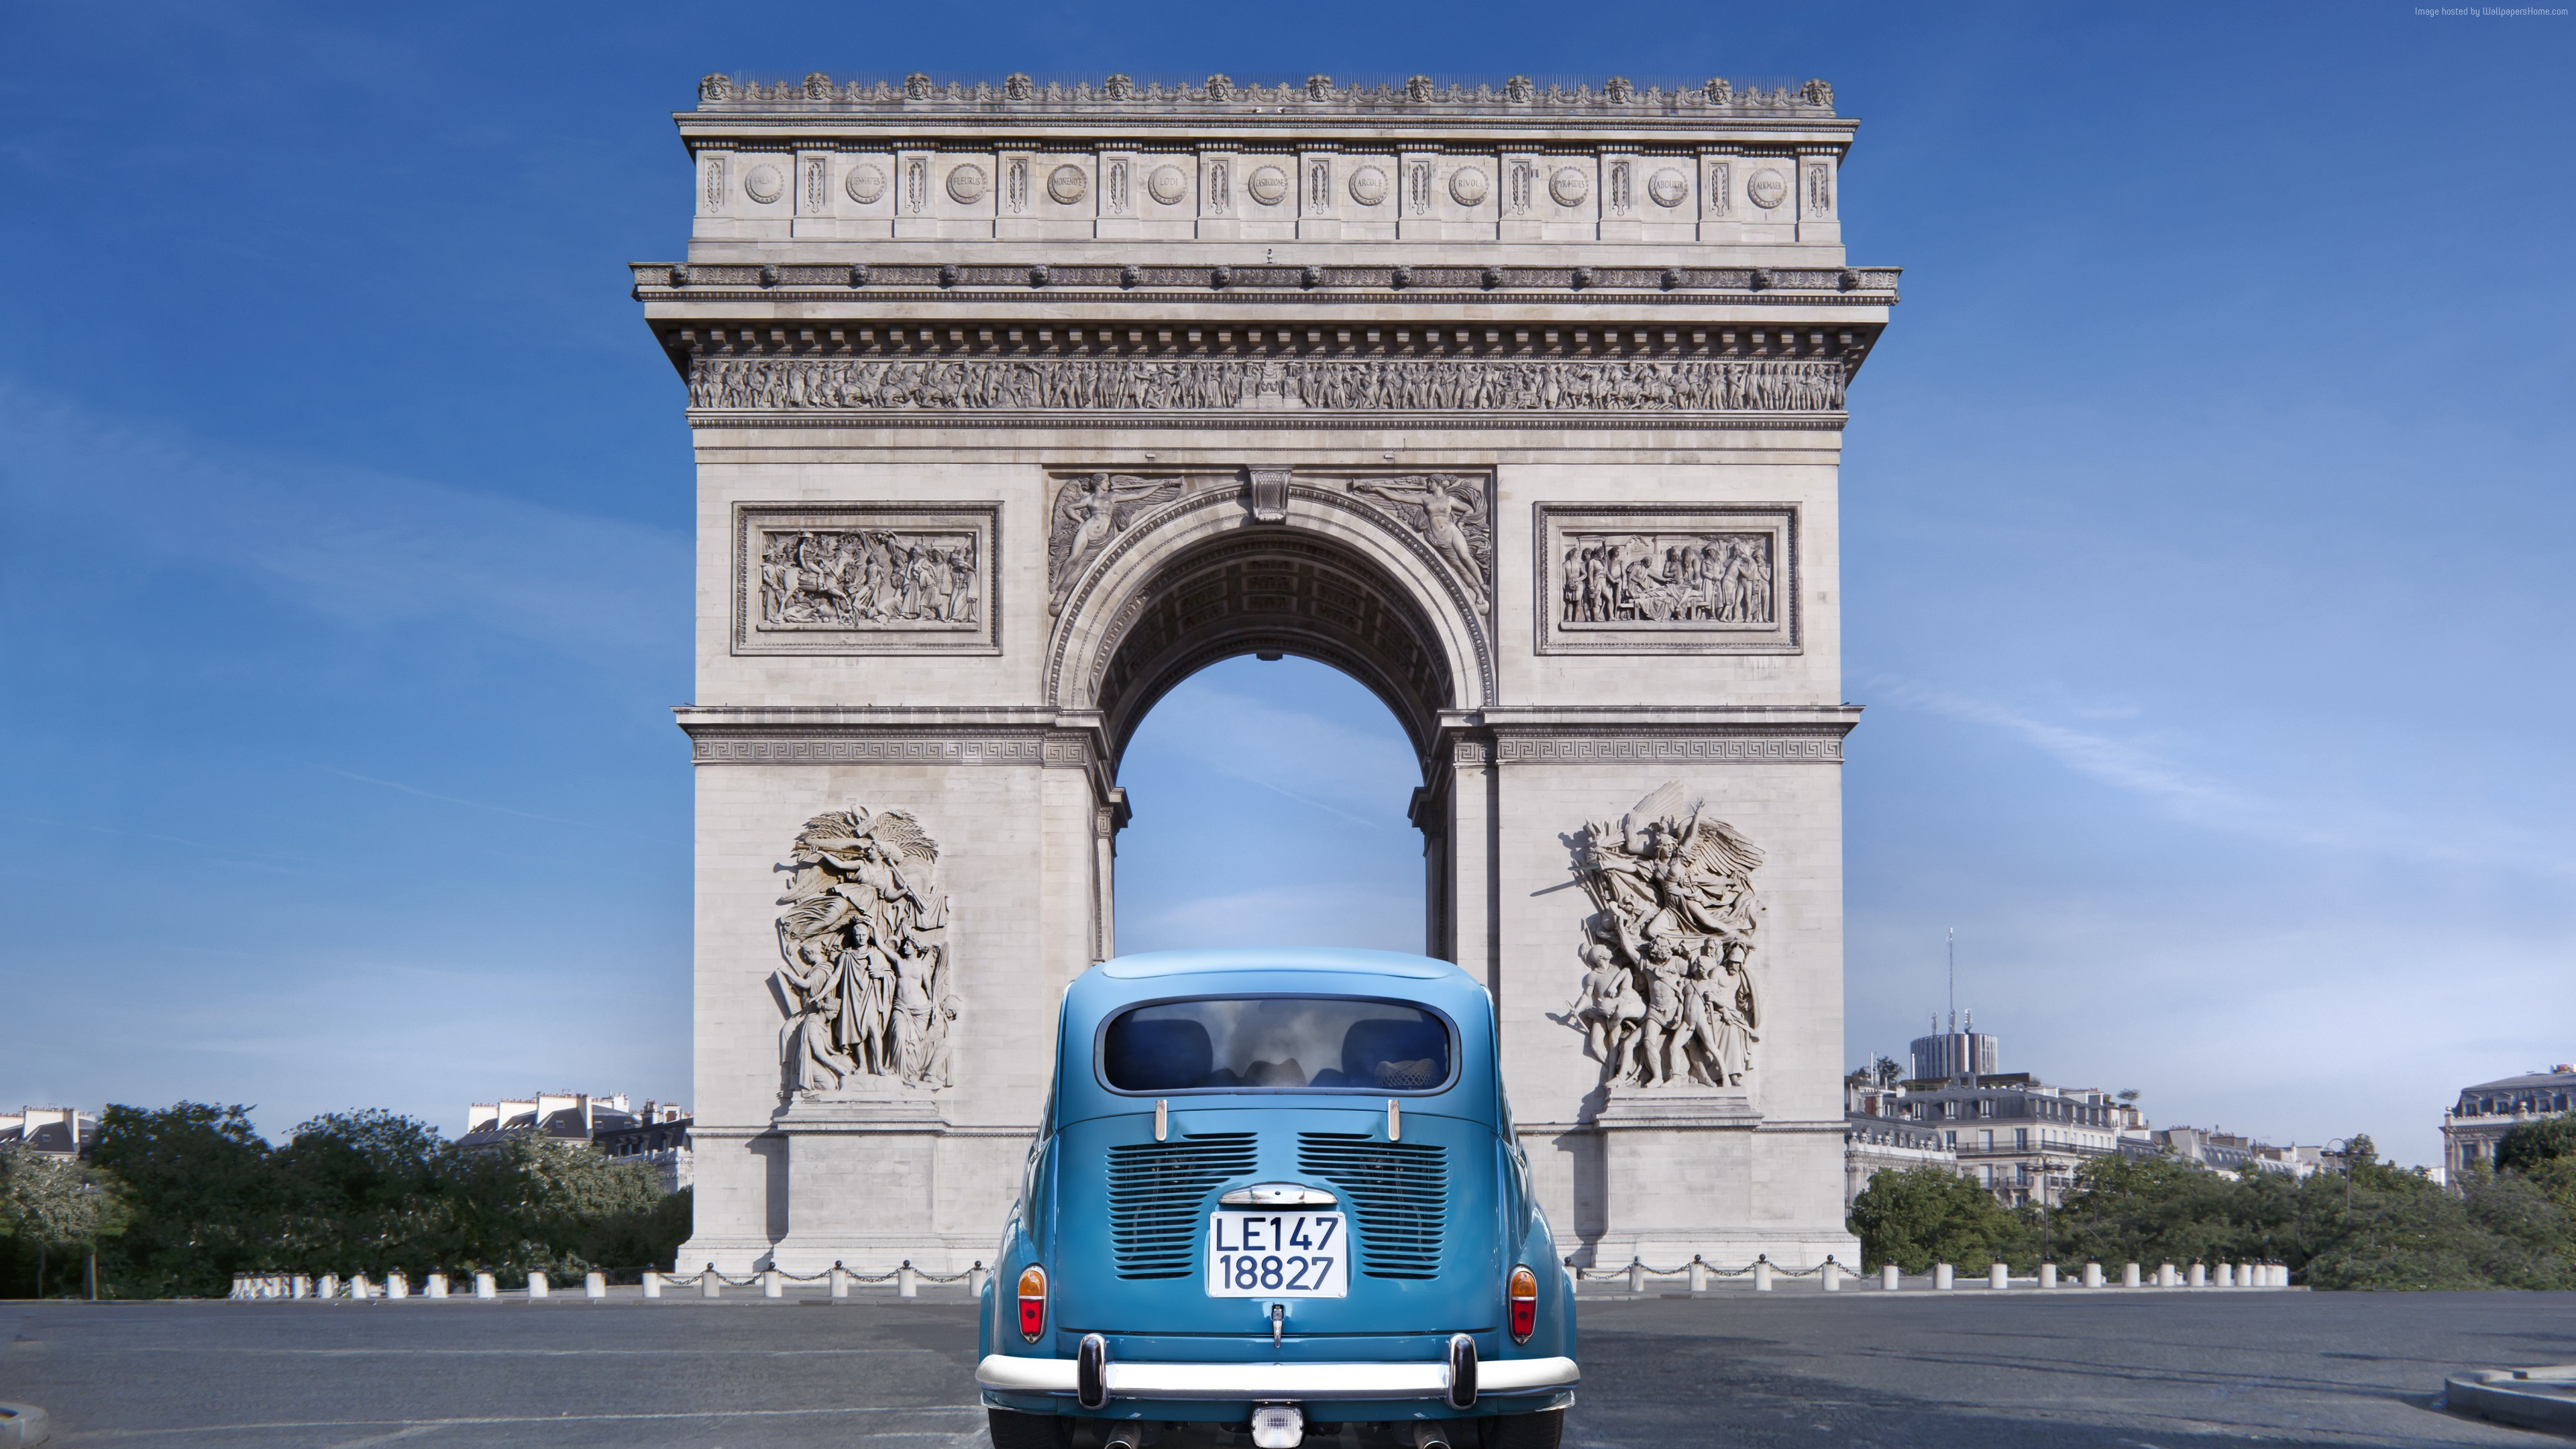 Wallpaper Paris, France, Arc de Triomphe, monument, travel, tourism, car, Architecture